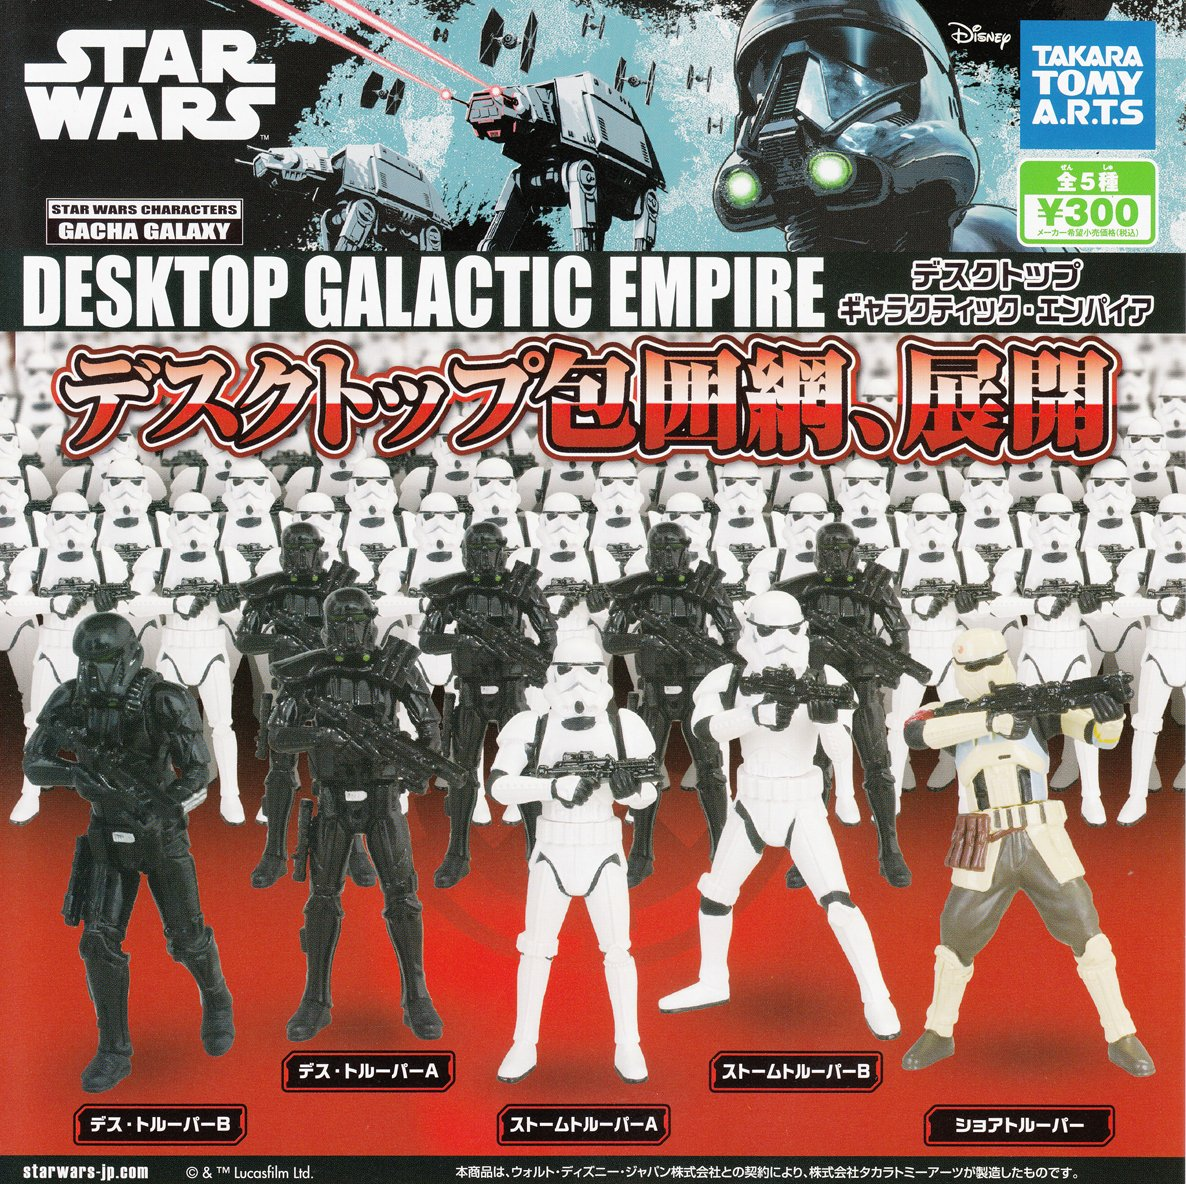 escritorio Star Wars Empire Gyarakuteikku: Amazon.es: Juguetes y ...